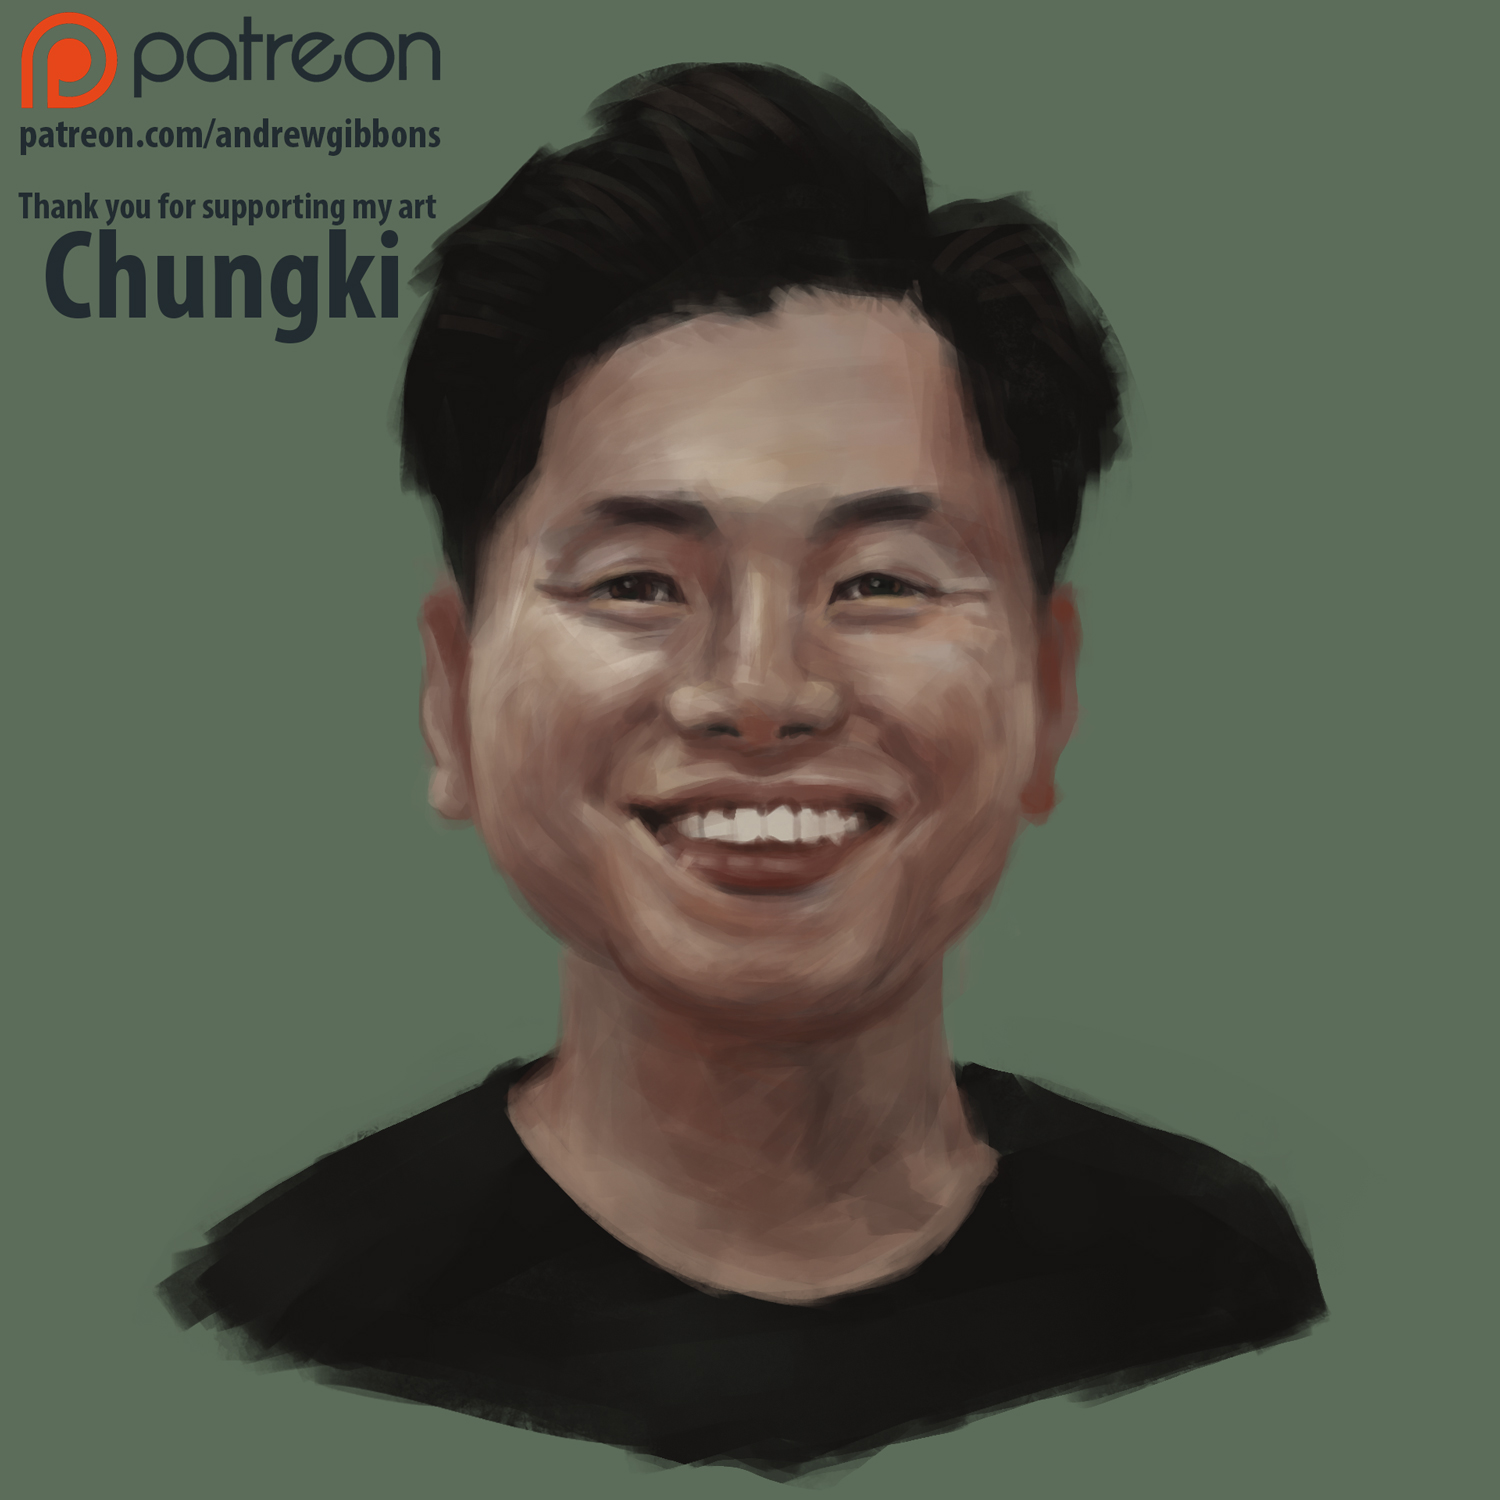 [Image: patron_portrait___chungki_by_andrew_gibbons-dbhzb0h.jpg]